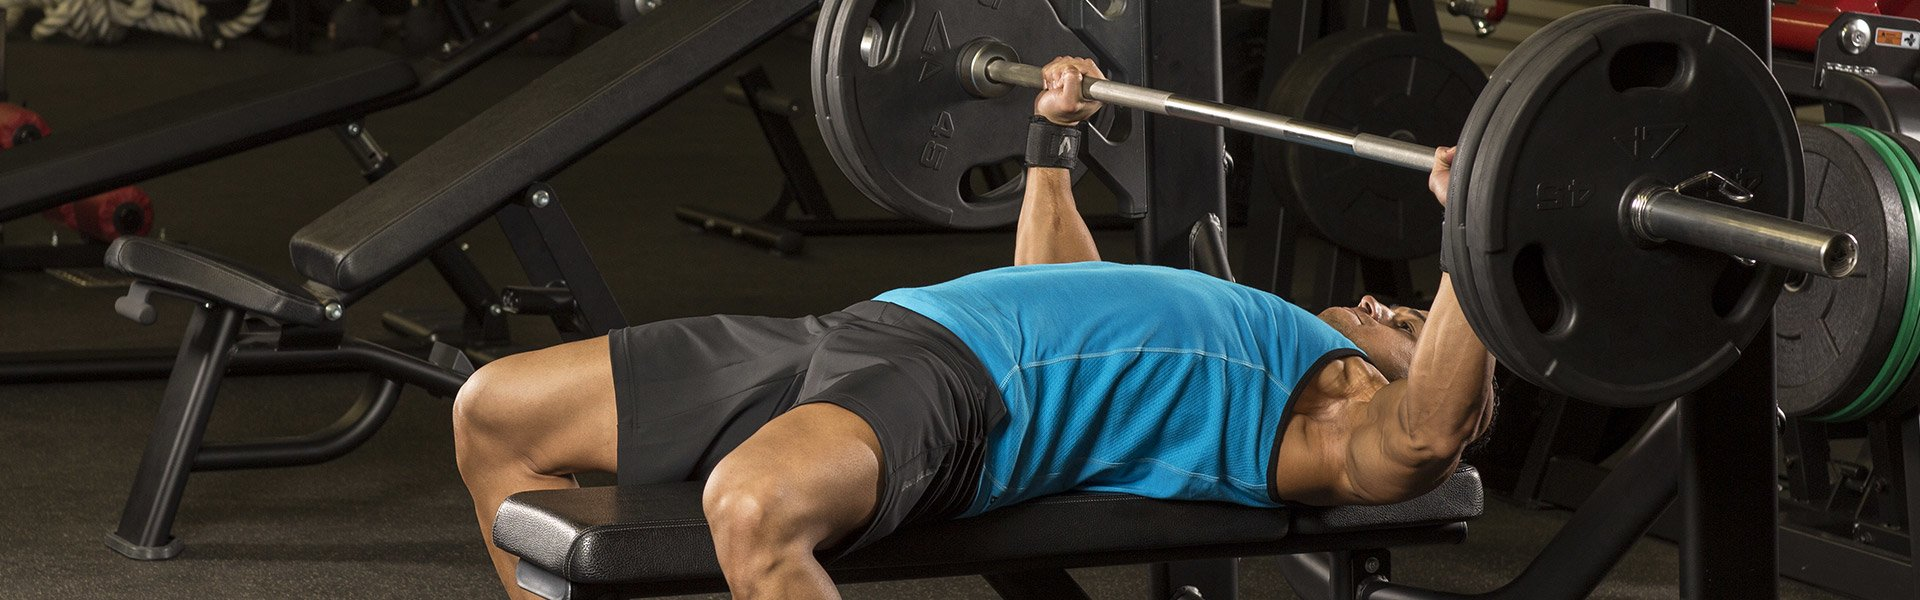 Benching Own Weight Part - 48: Your Bench Press